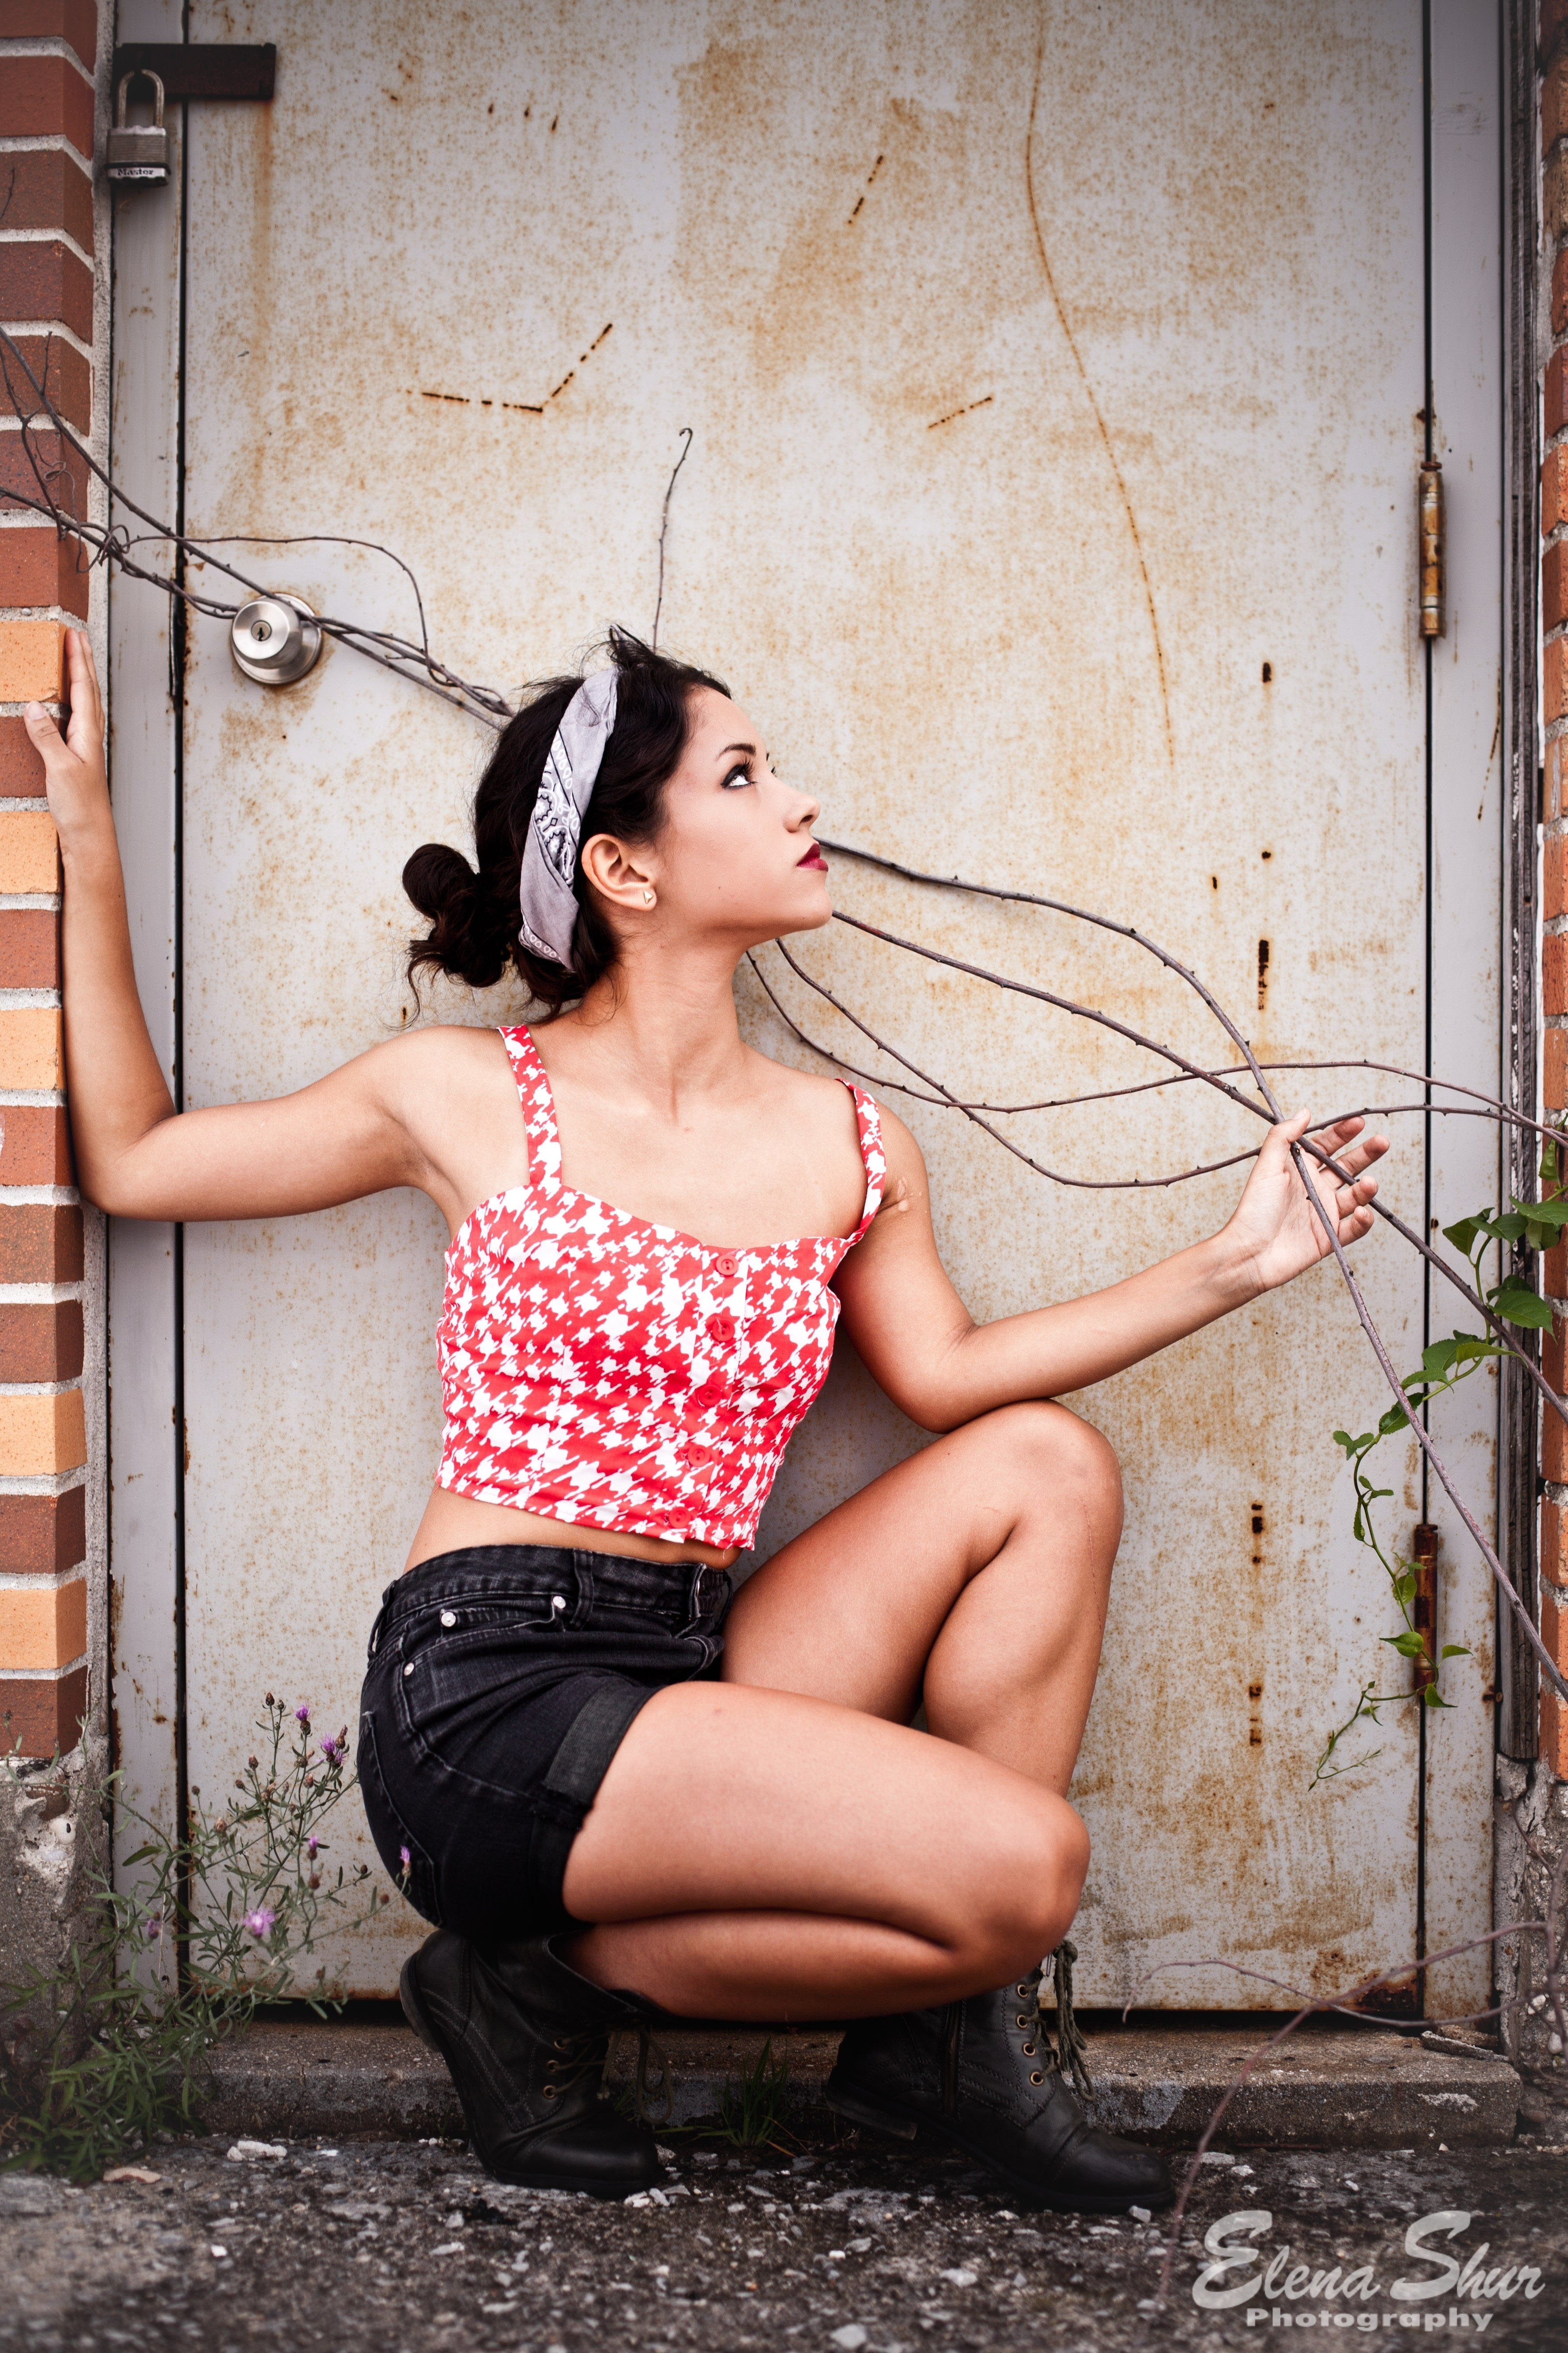 10 Beautiful Pin Up Girl Photoshoot Ideas photo by elena shur edgy and vintage photoshoot with a pin up